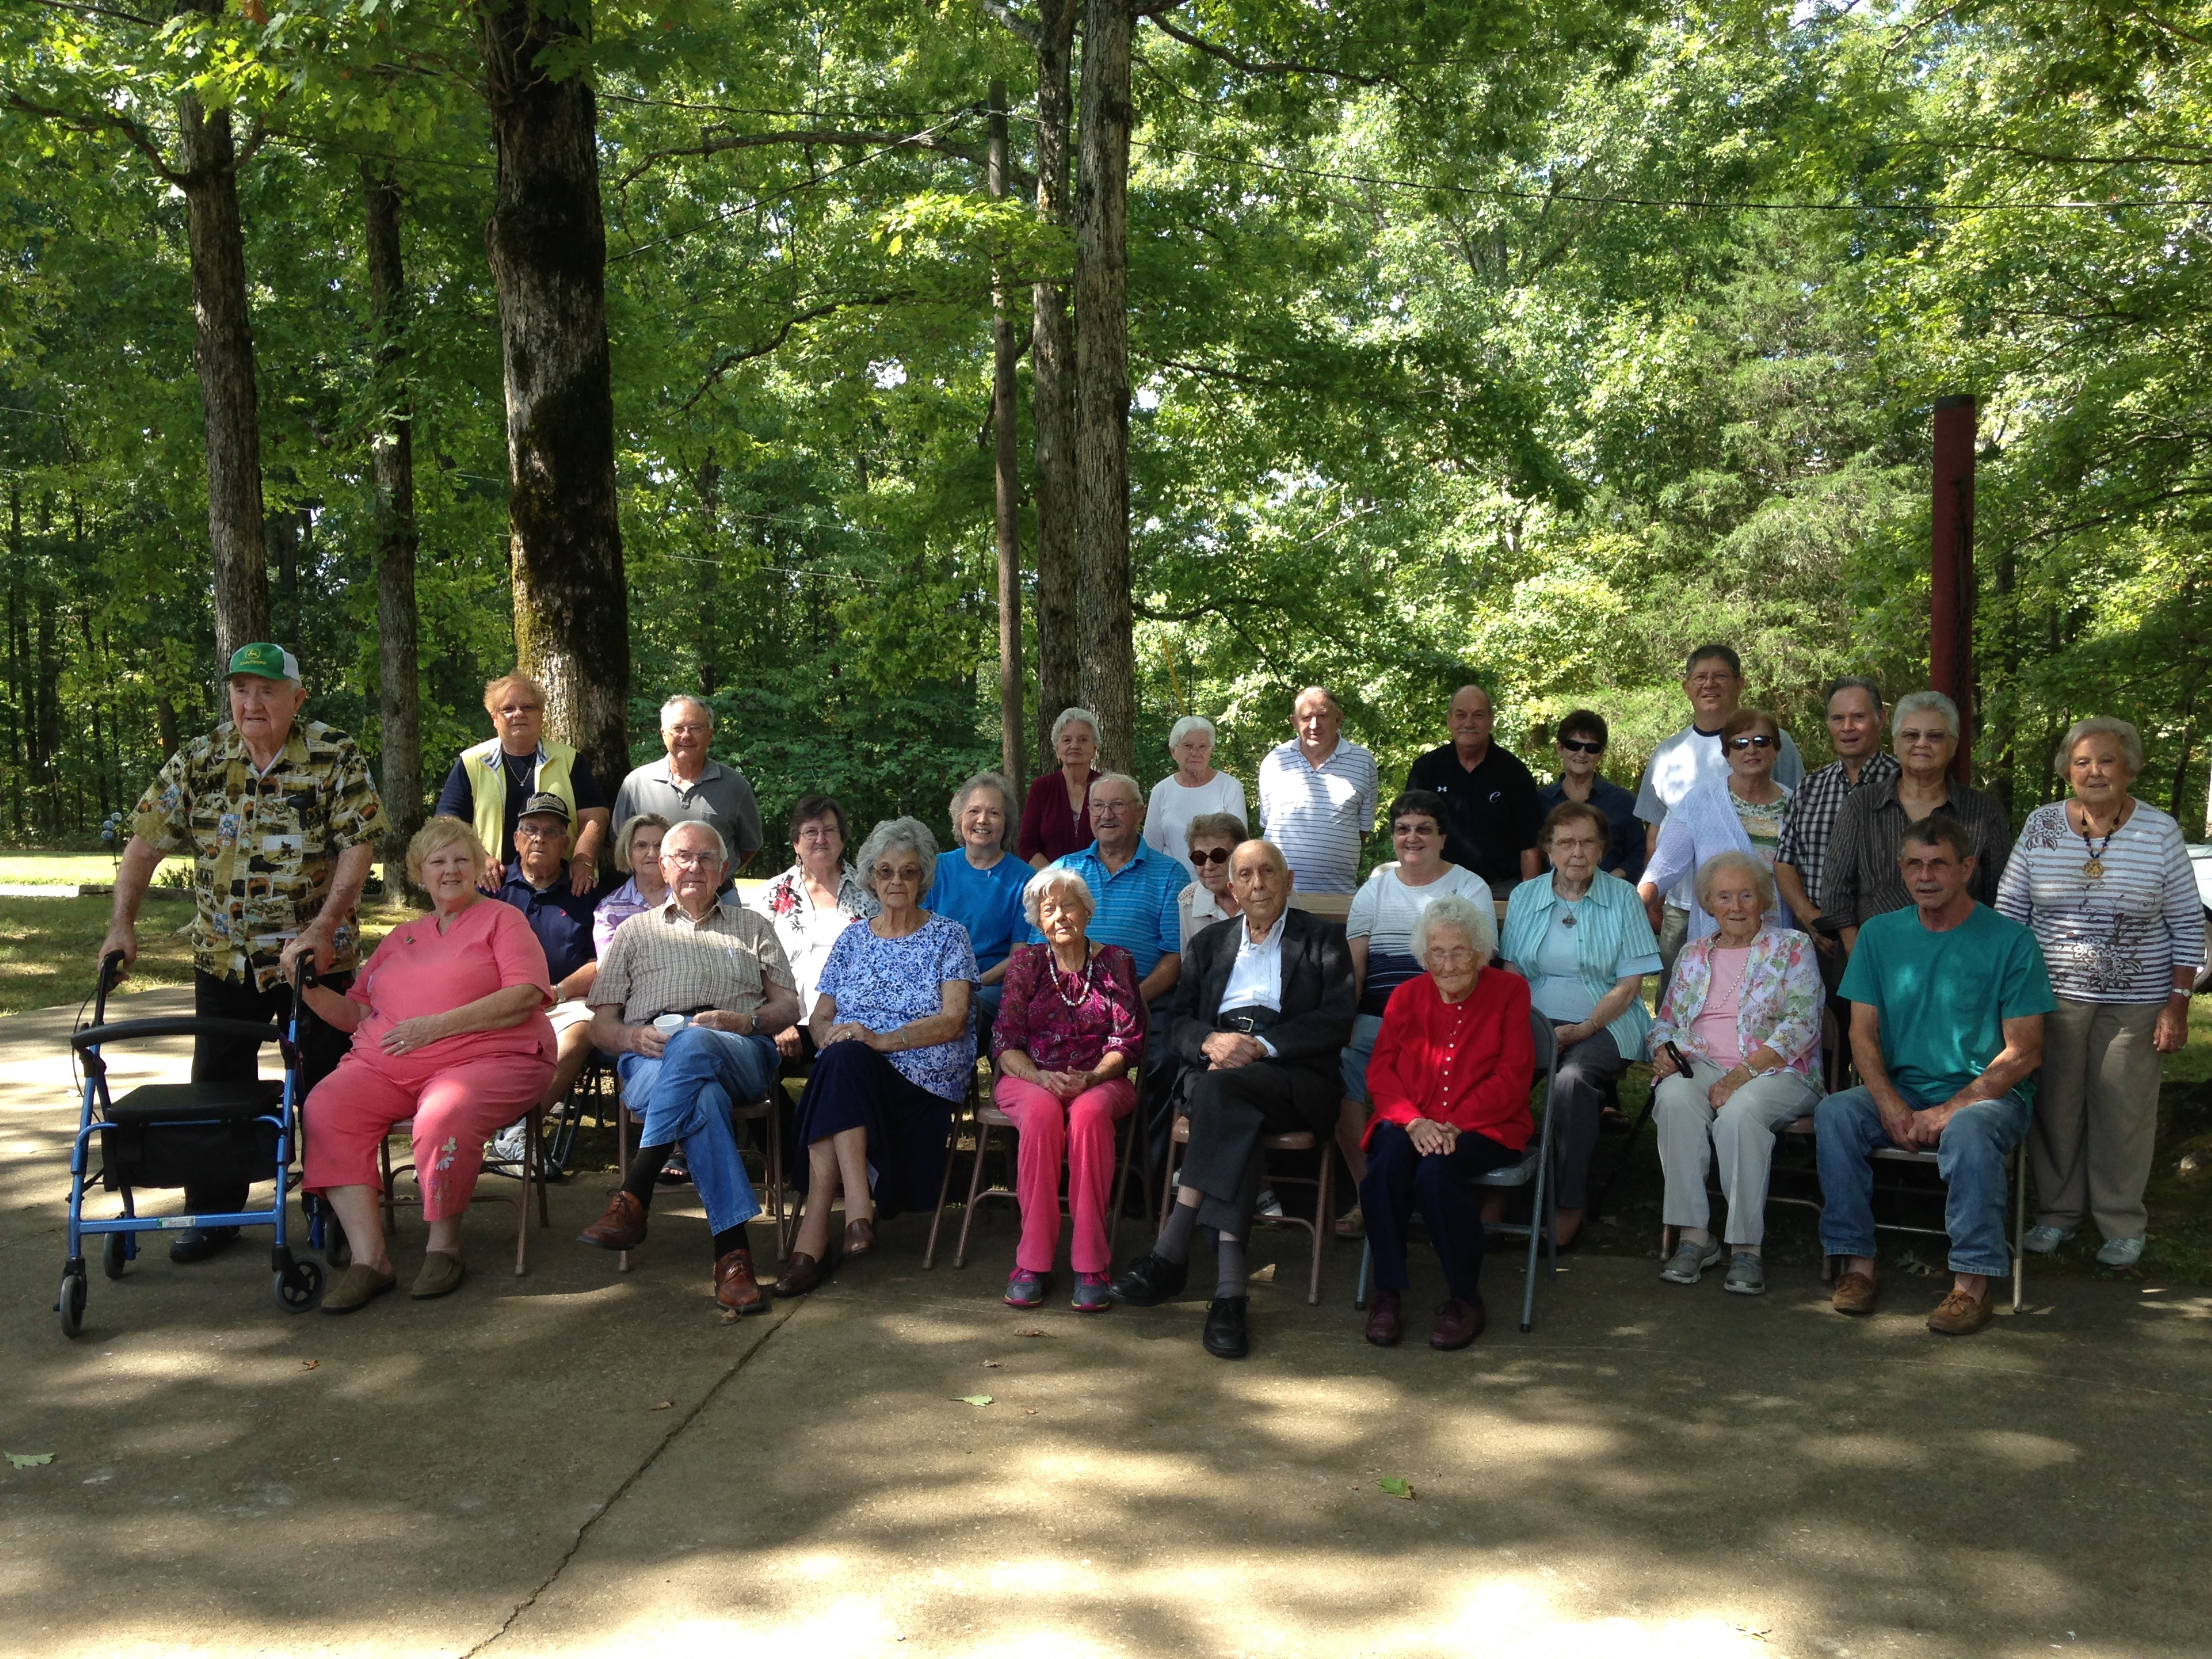 Seniors Group August 2015